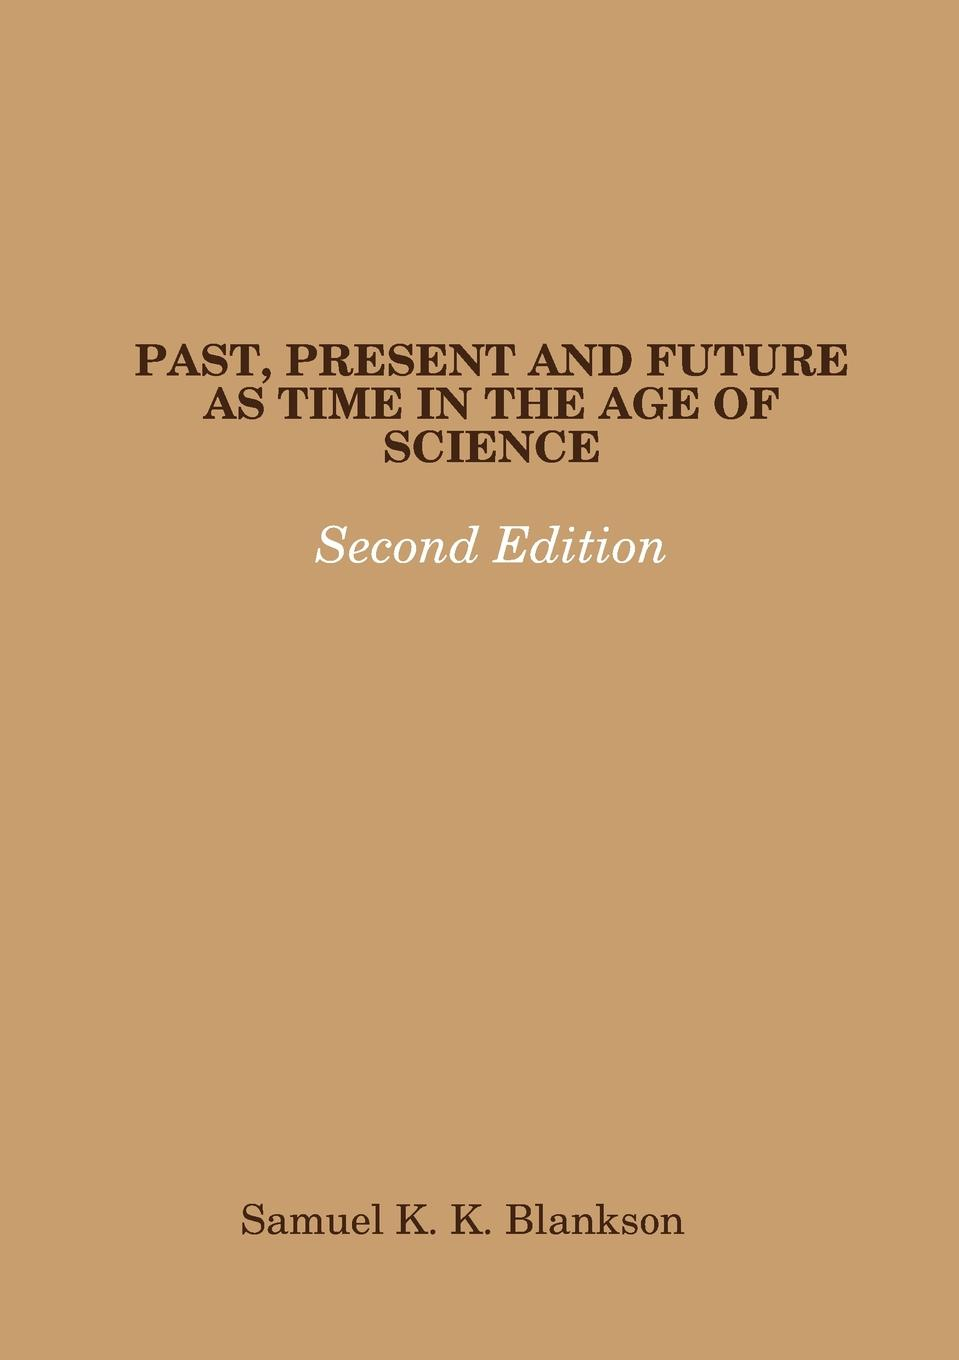 Samuel K. K. Blankson PAST, PRESENT AND FUTURE AS TIME IN THE AGE OF SCIENCE - SECOND EDITION anastasia novykh predictions of the future and truth about the past and the present